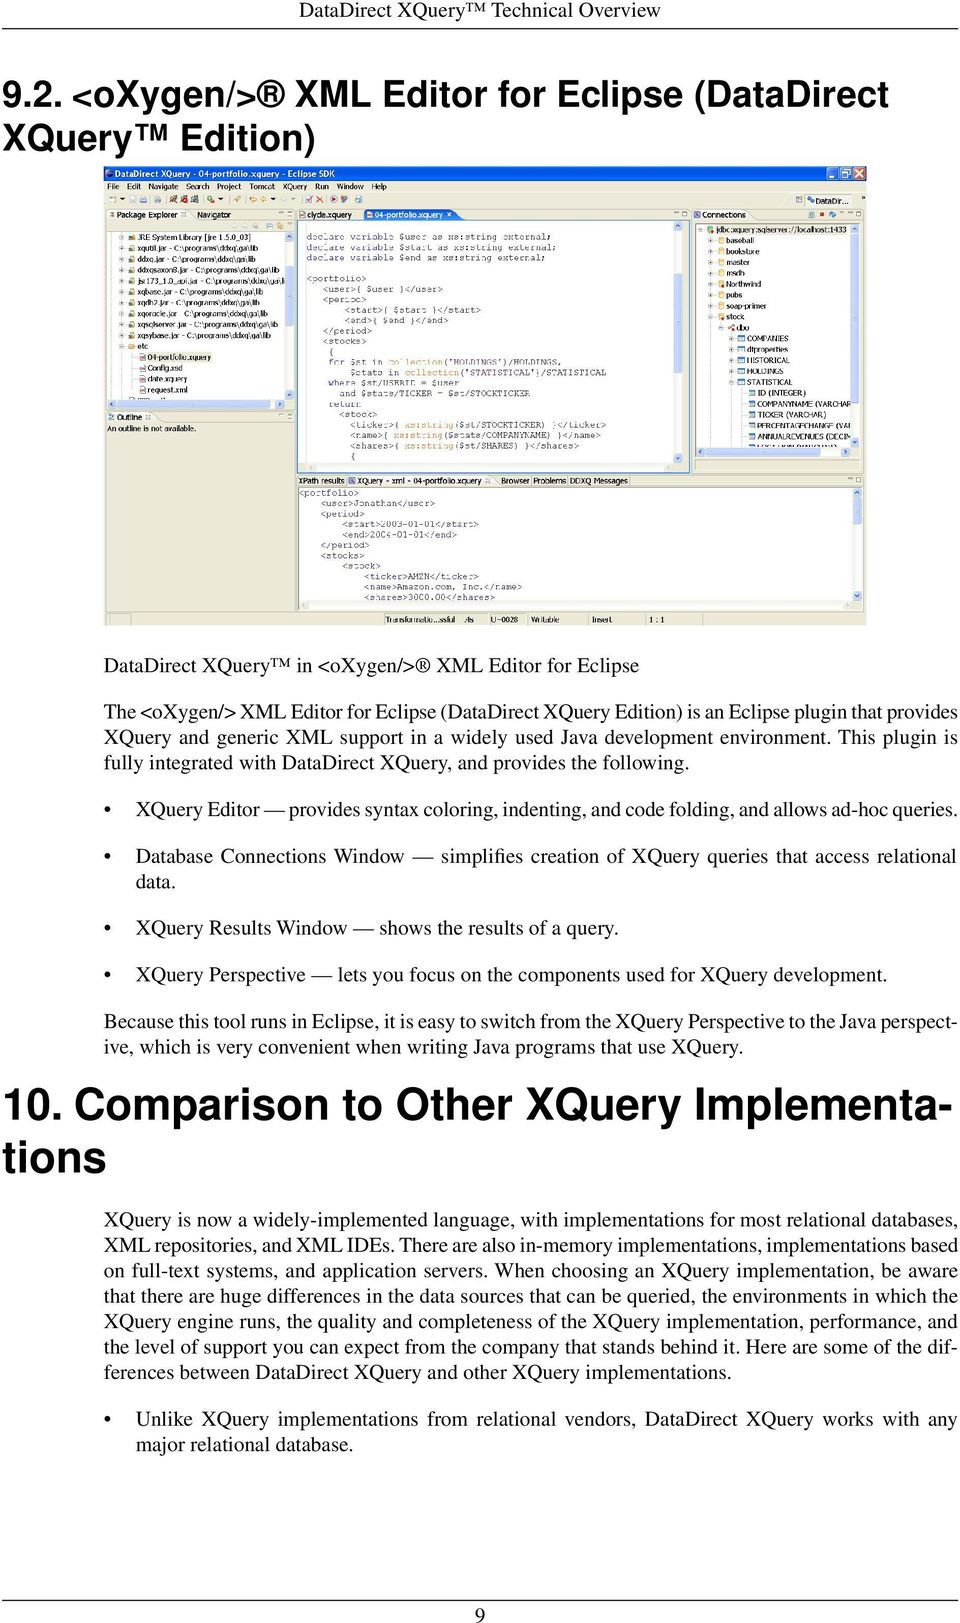 DataDirect XQuery Technical Overview - PDF